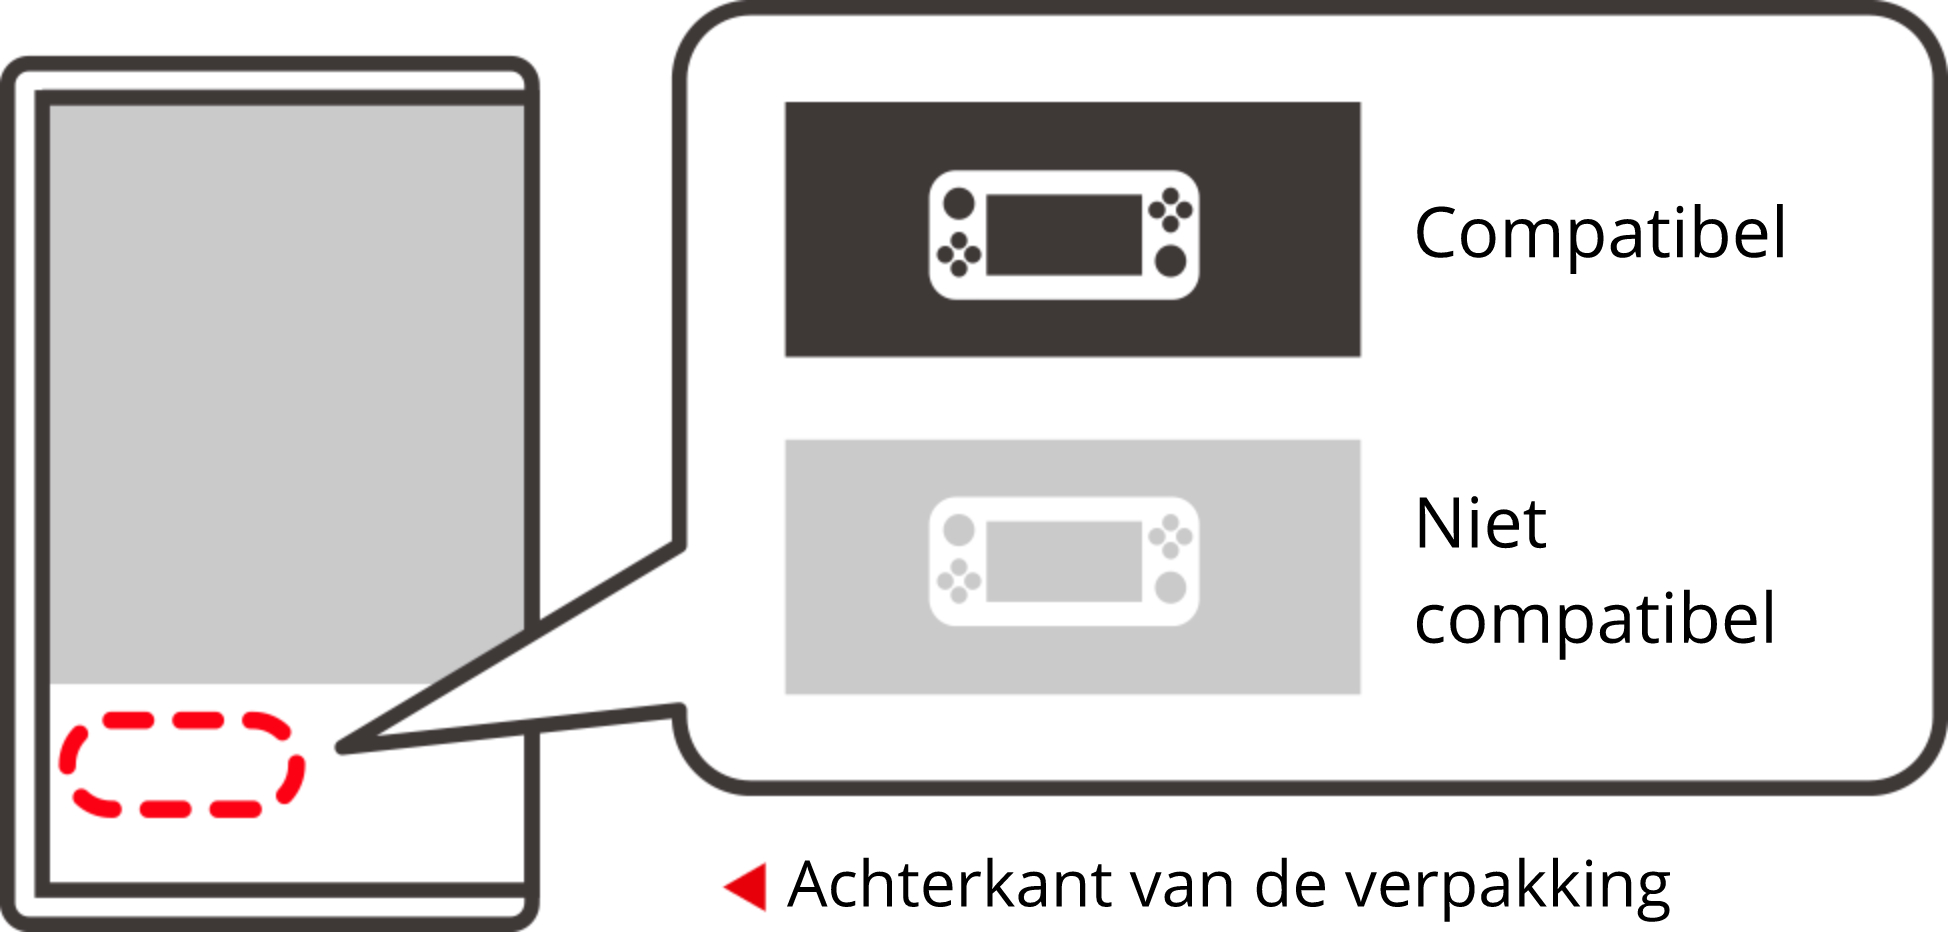 NSwitchPopupCompatibleSoftware_nl.jpg